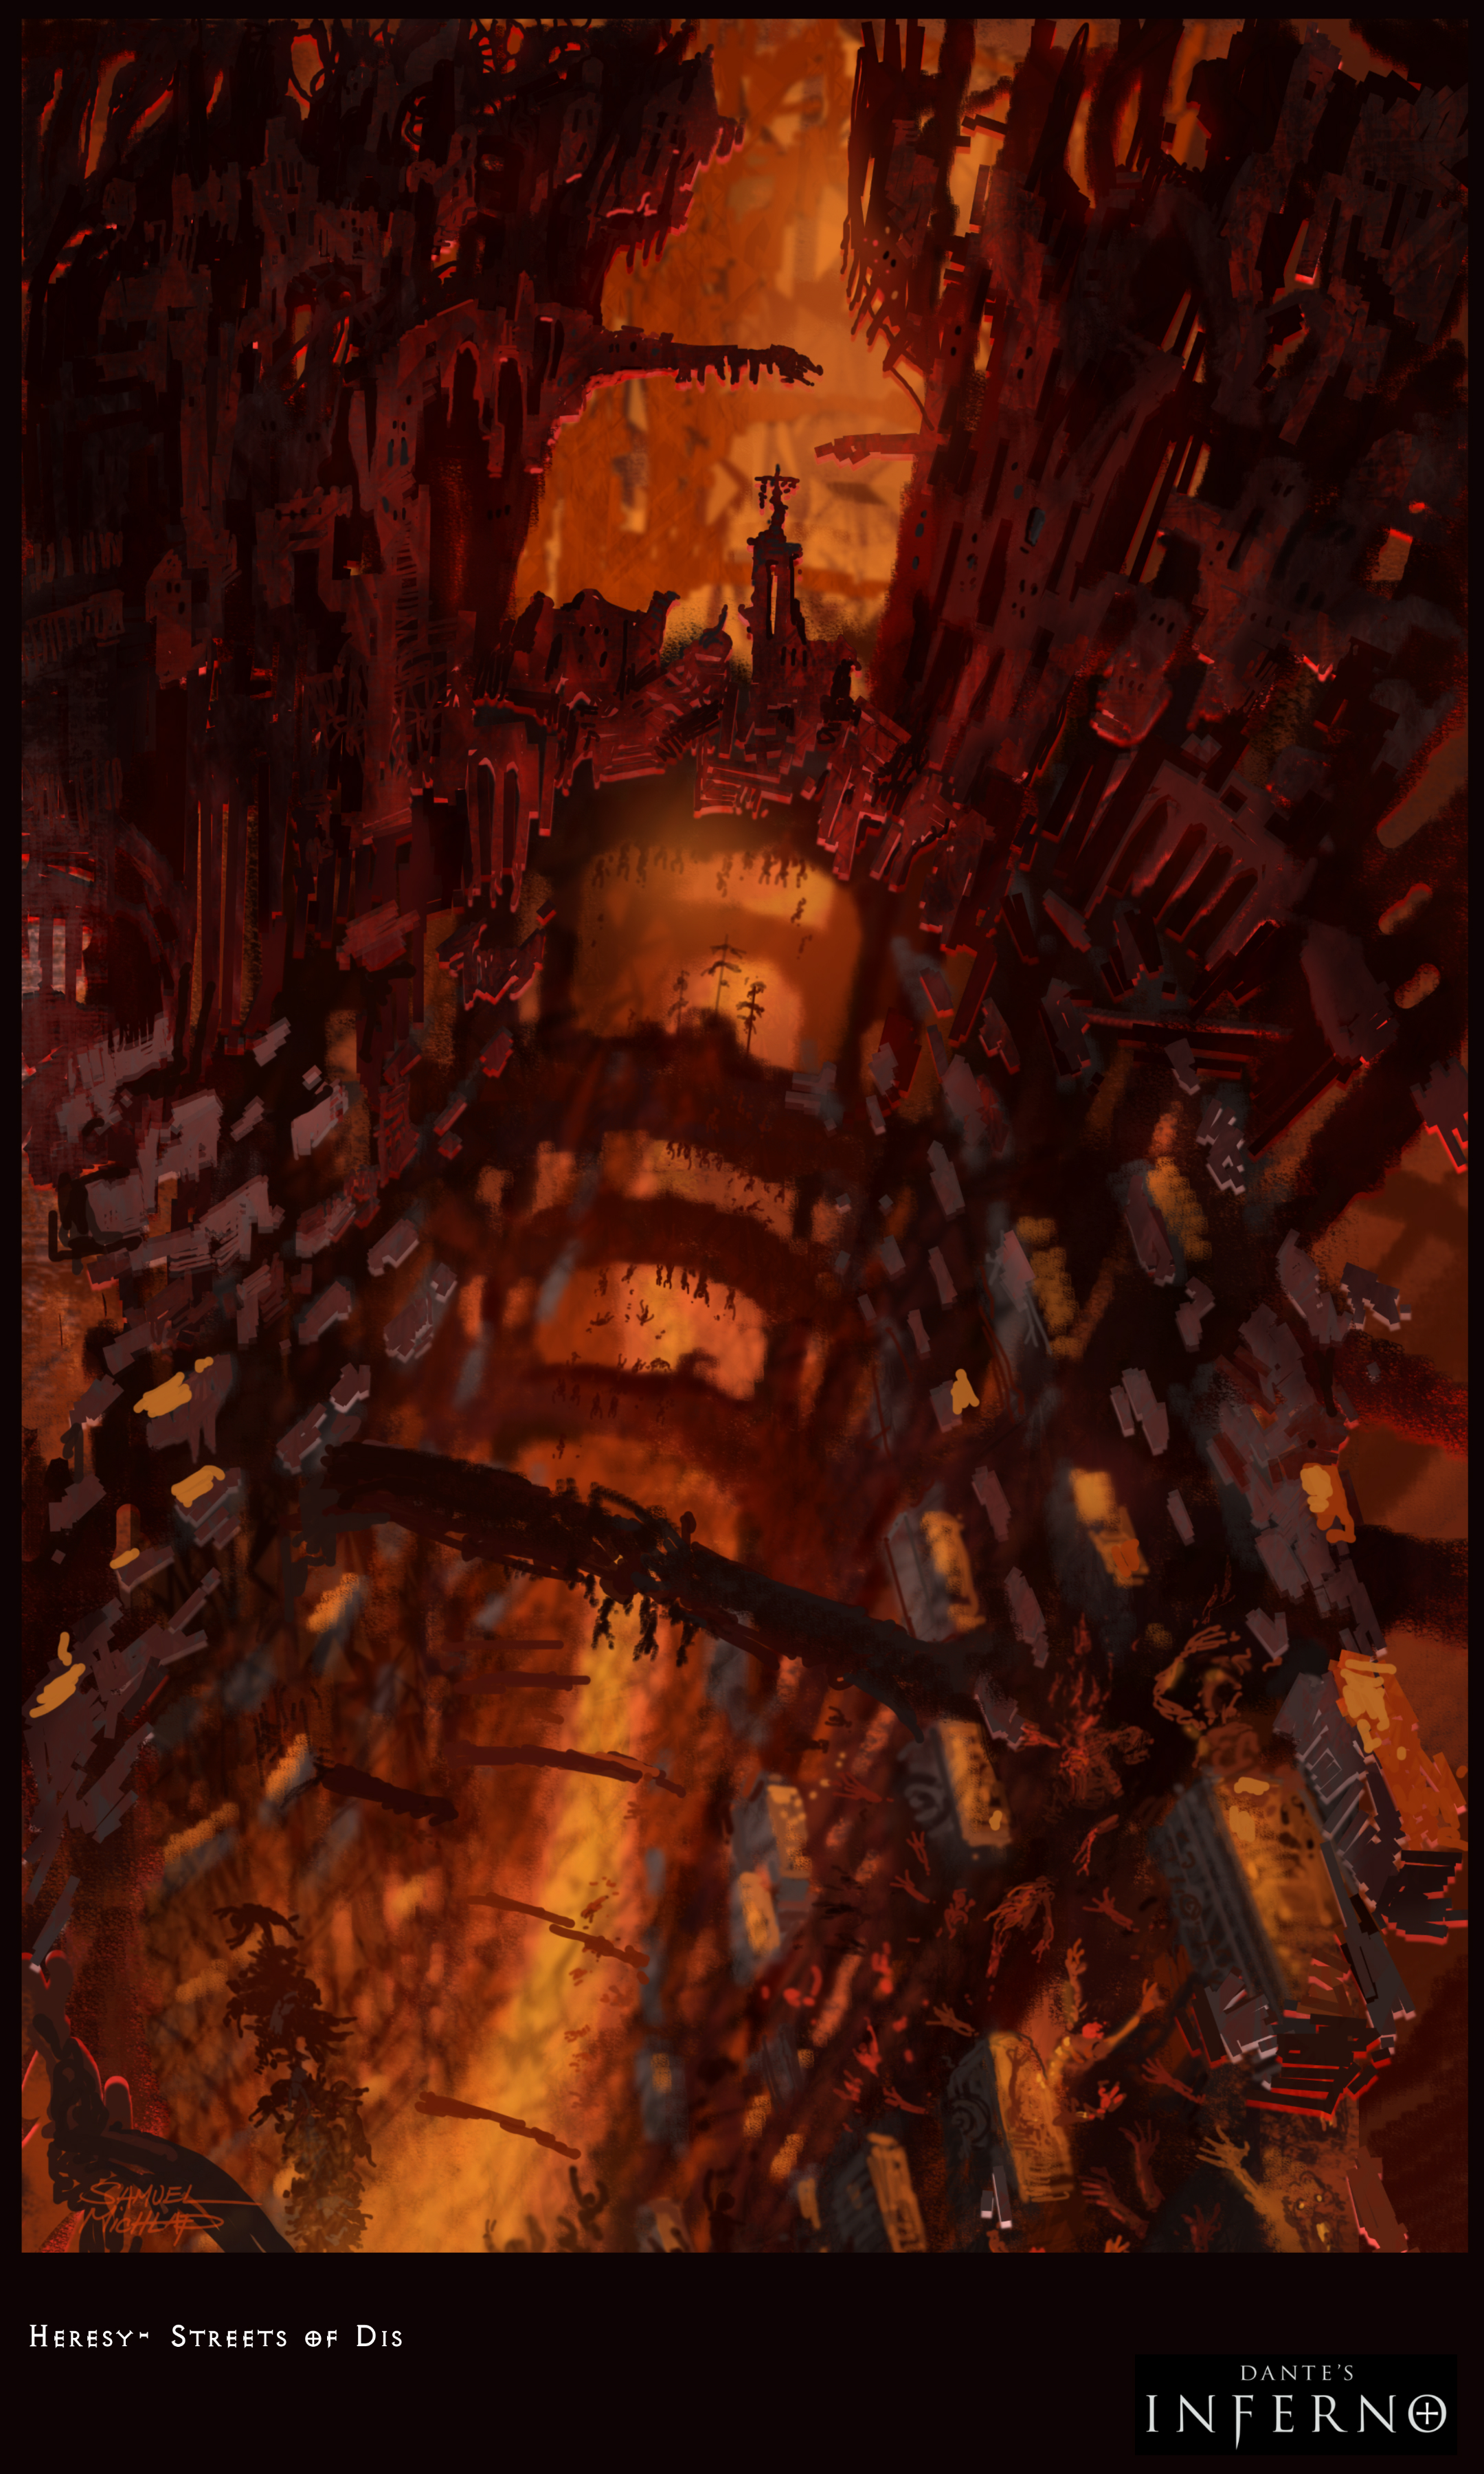 Dante S Inferno 2010 Promotional Art Mobygames